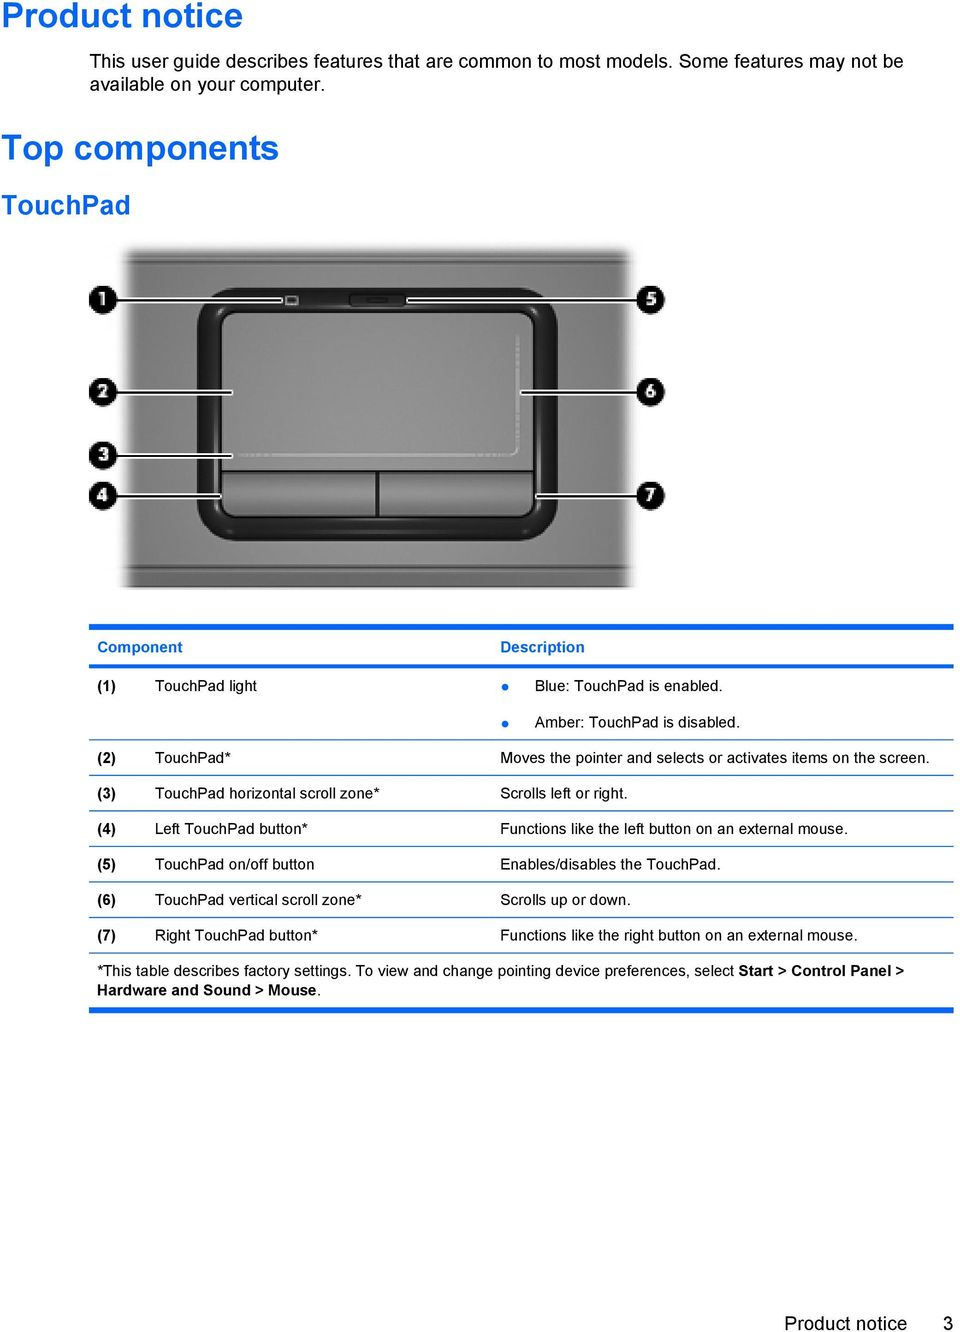 (3) TouchPad horizontal scroll zone* Scrolls left or right. (4) Left TouchPad button* Functions like the left button on an external mouse. (5) TouchPad on/off button Enables/disables the TouchPad.